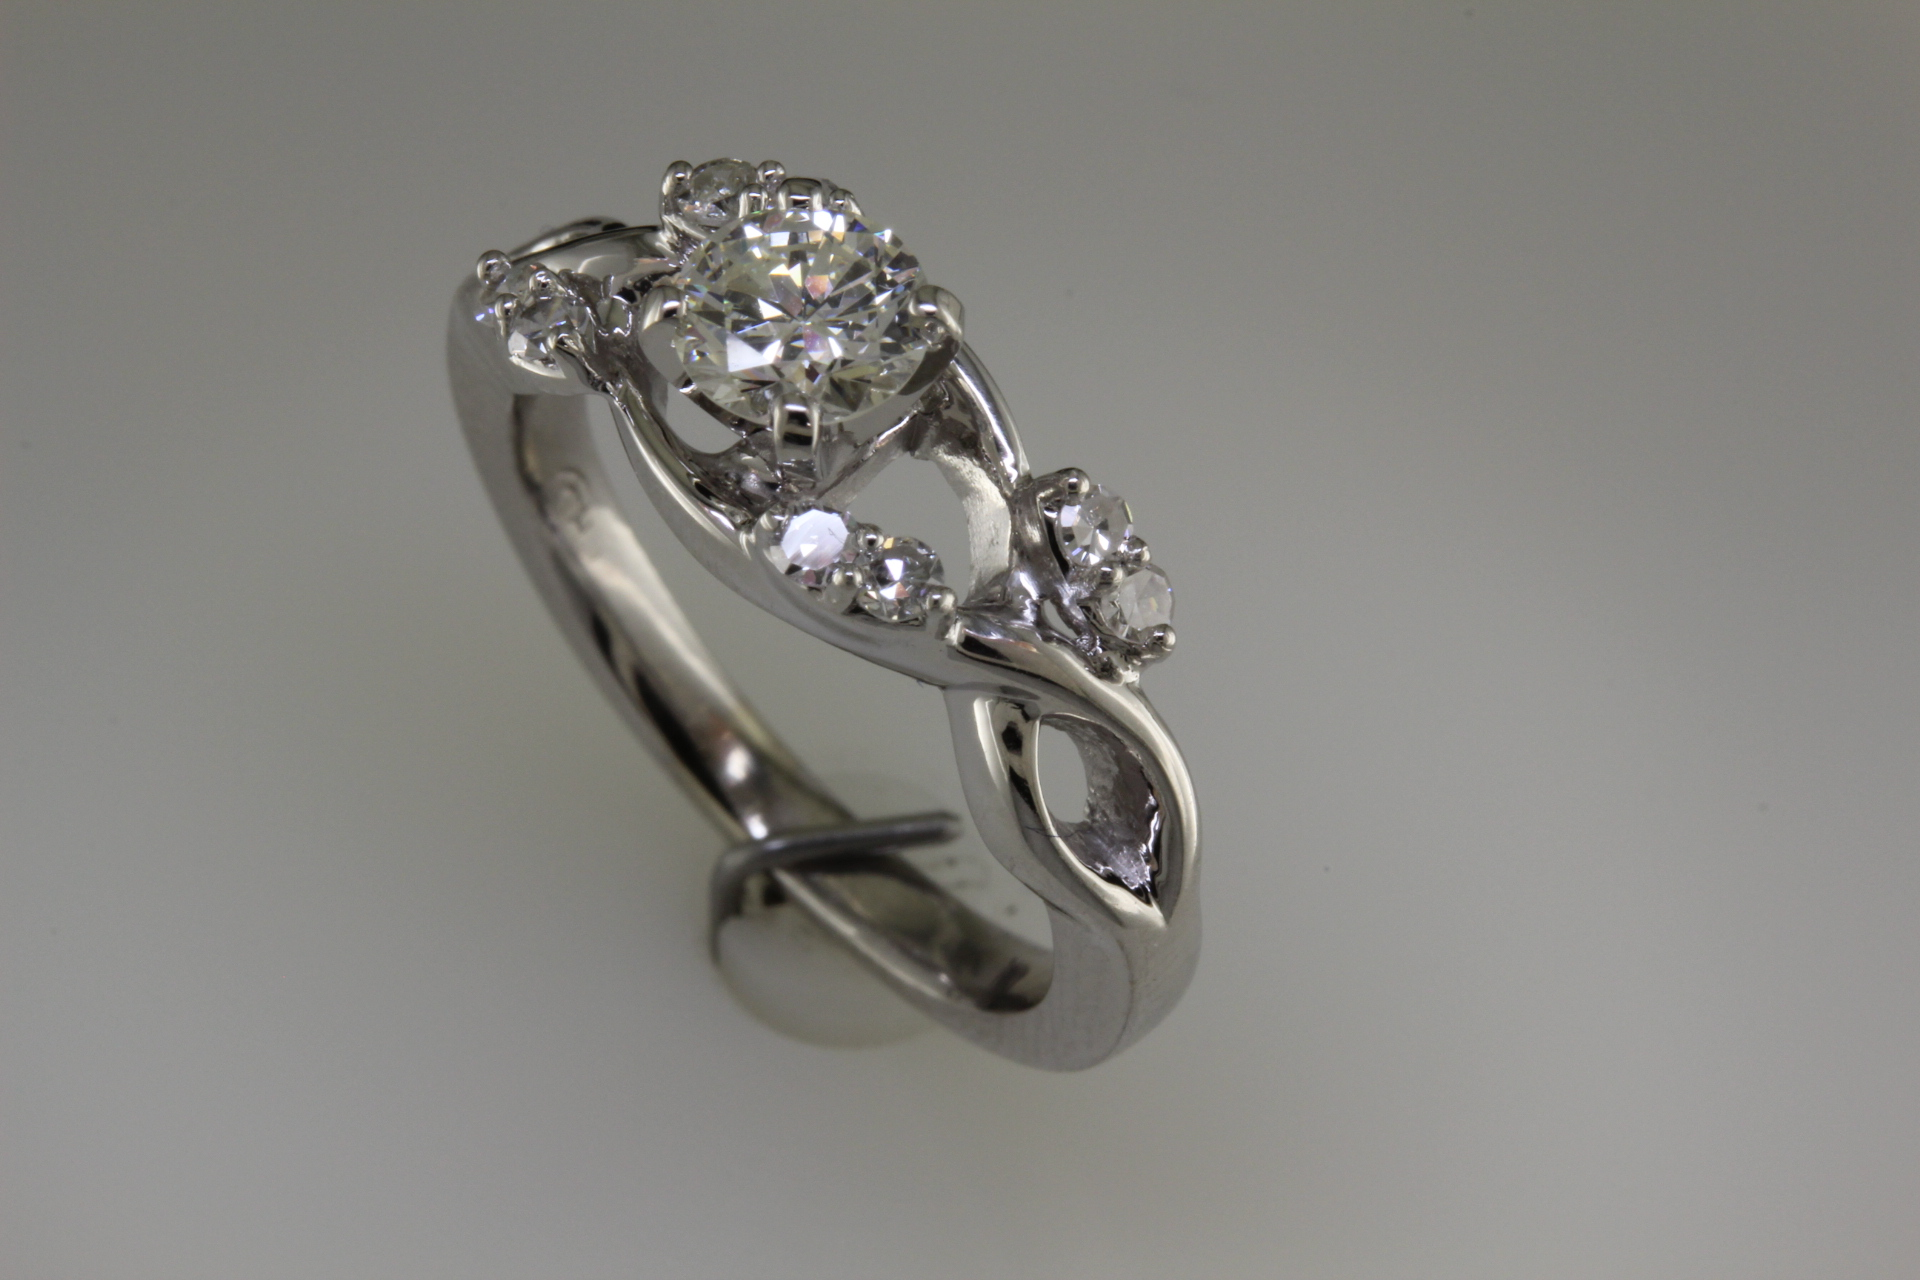 Side view - engagement ring